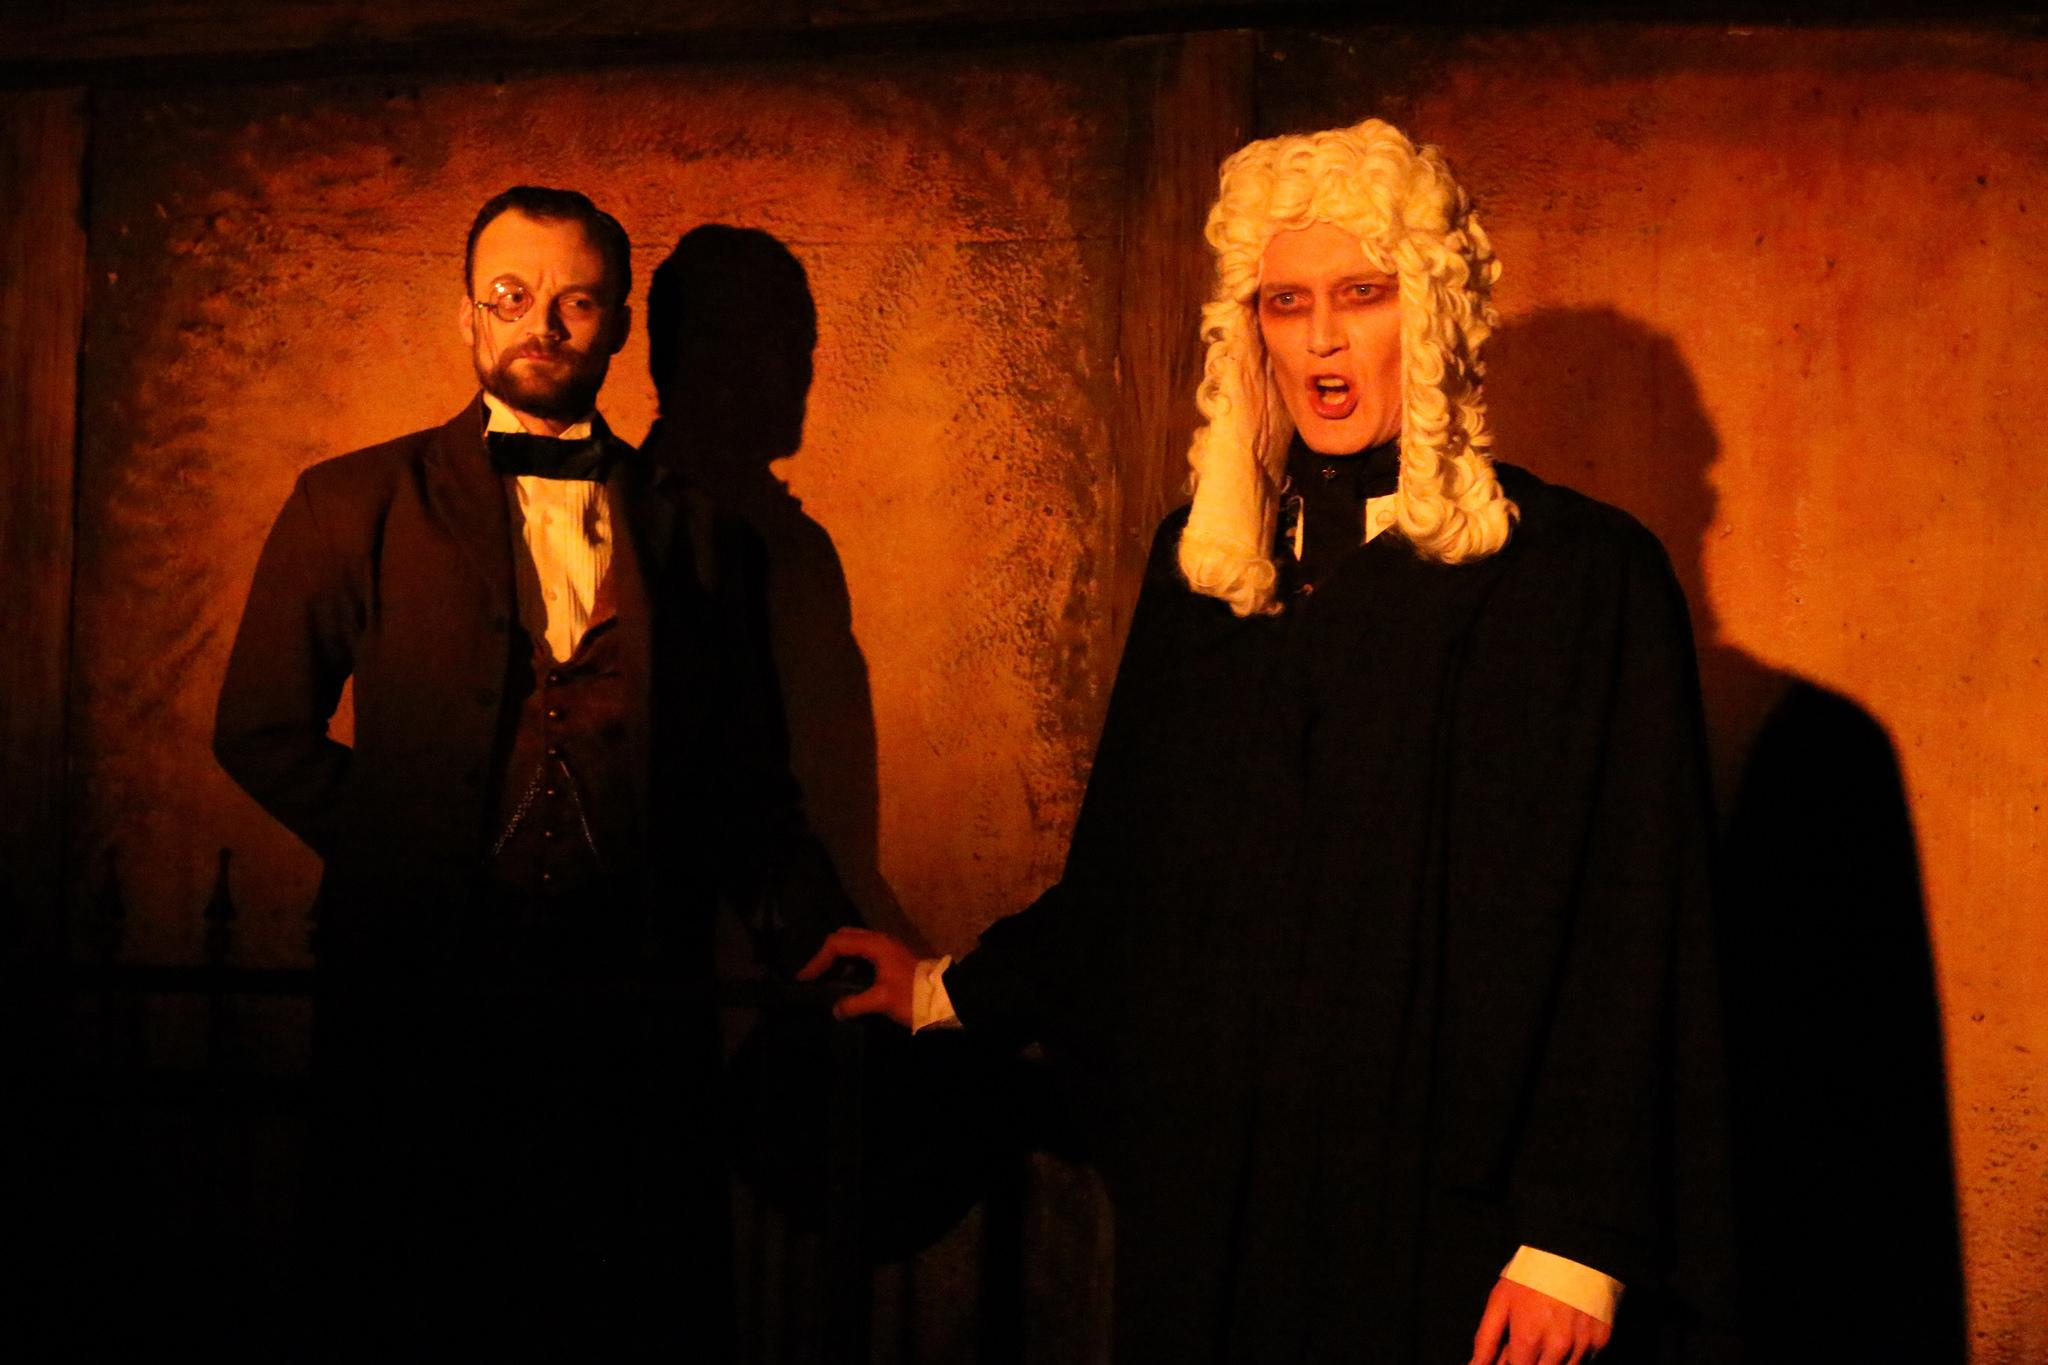 Kevin Webb as Beadle Bamford and John B. Leen as Judge Turpin (Credit: Cody Jolly Photography)